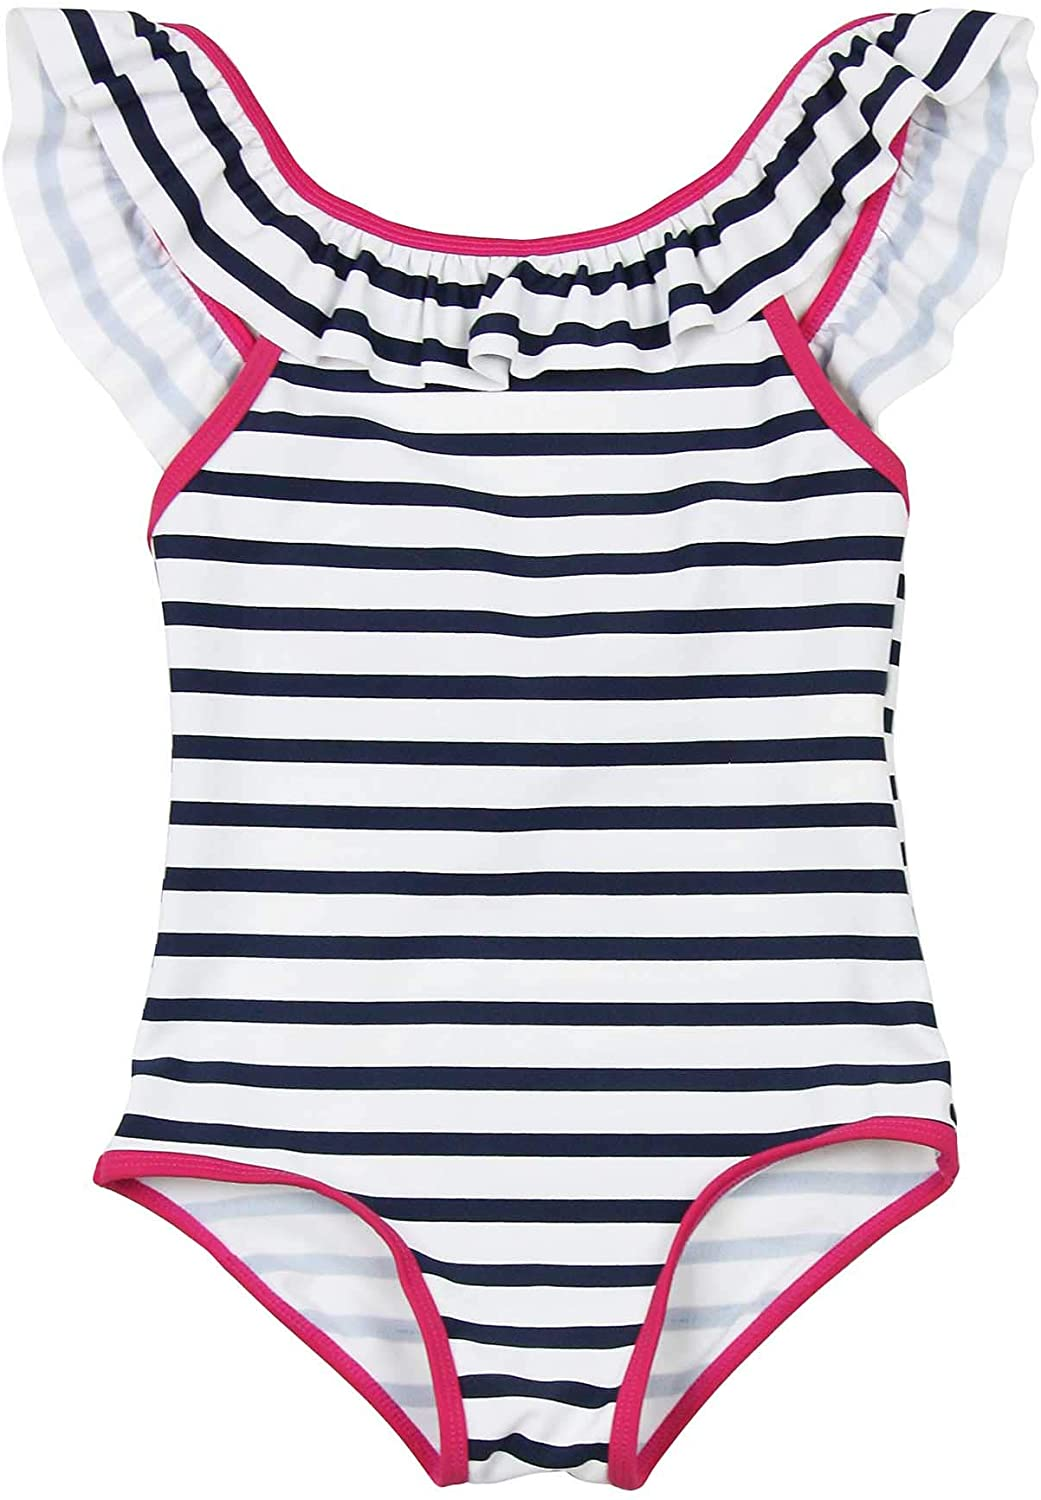 3POMMES Girls Striped One-Piece Swimsuit, Sizes 4-12